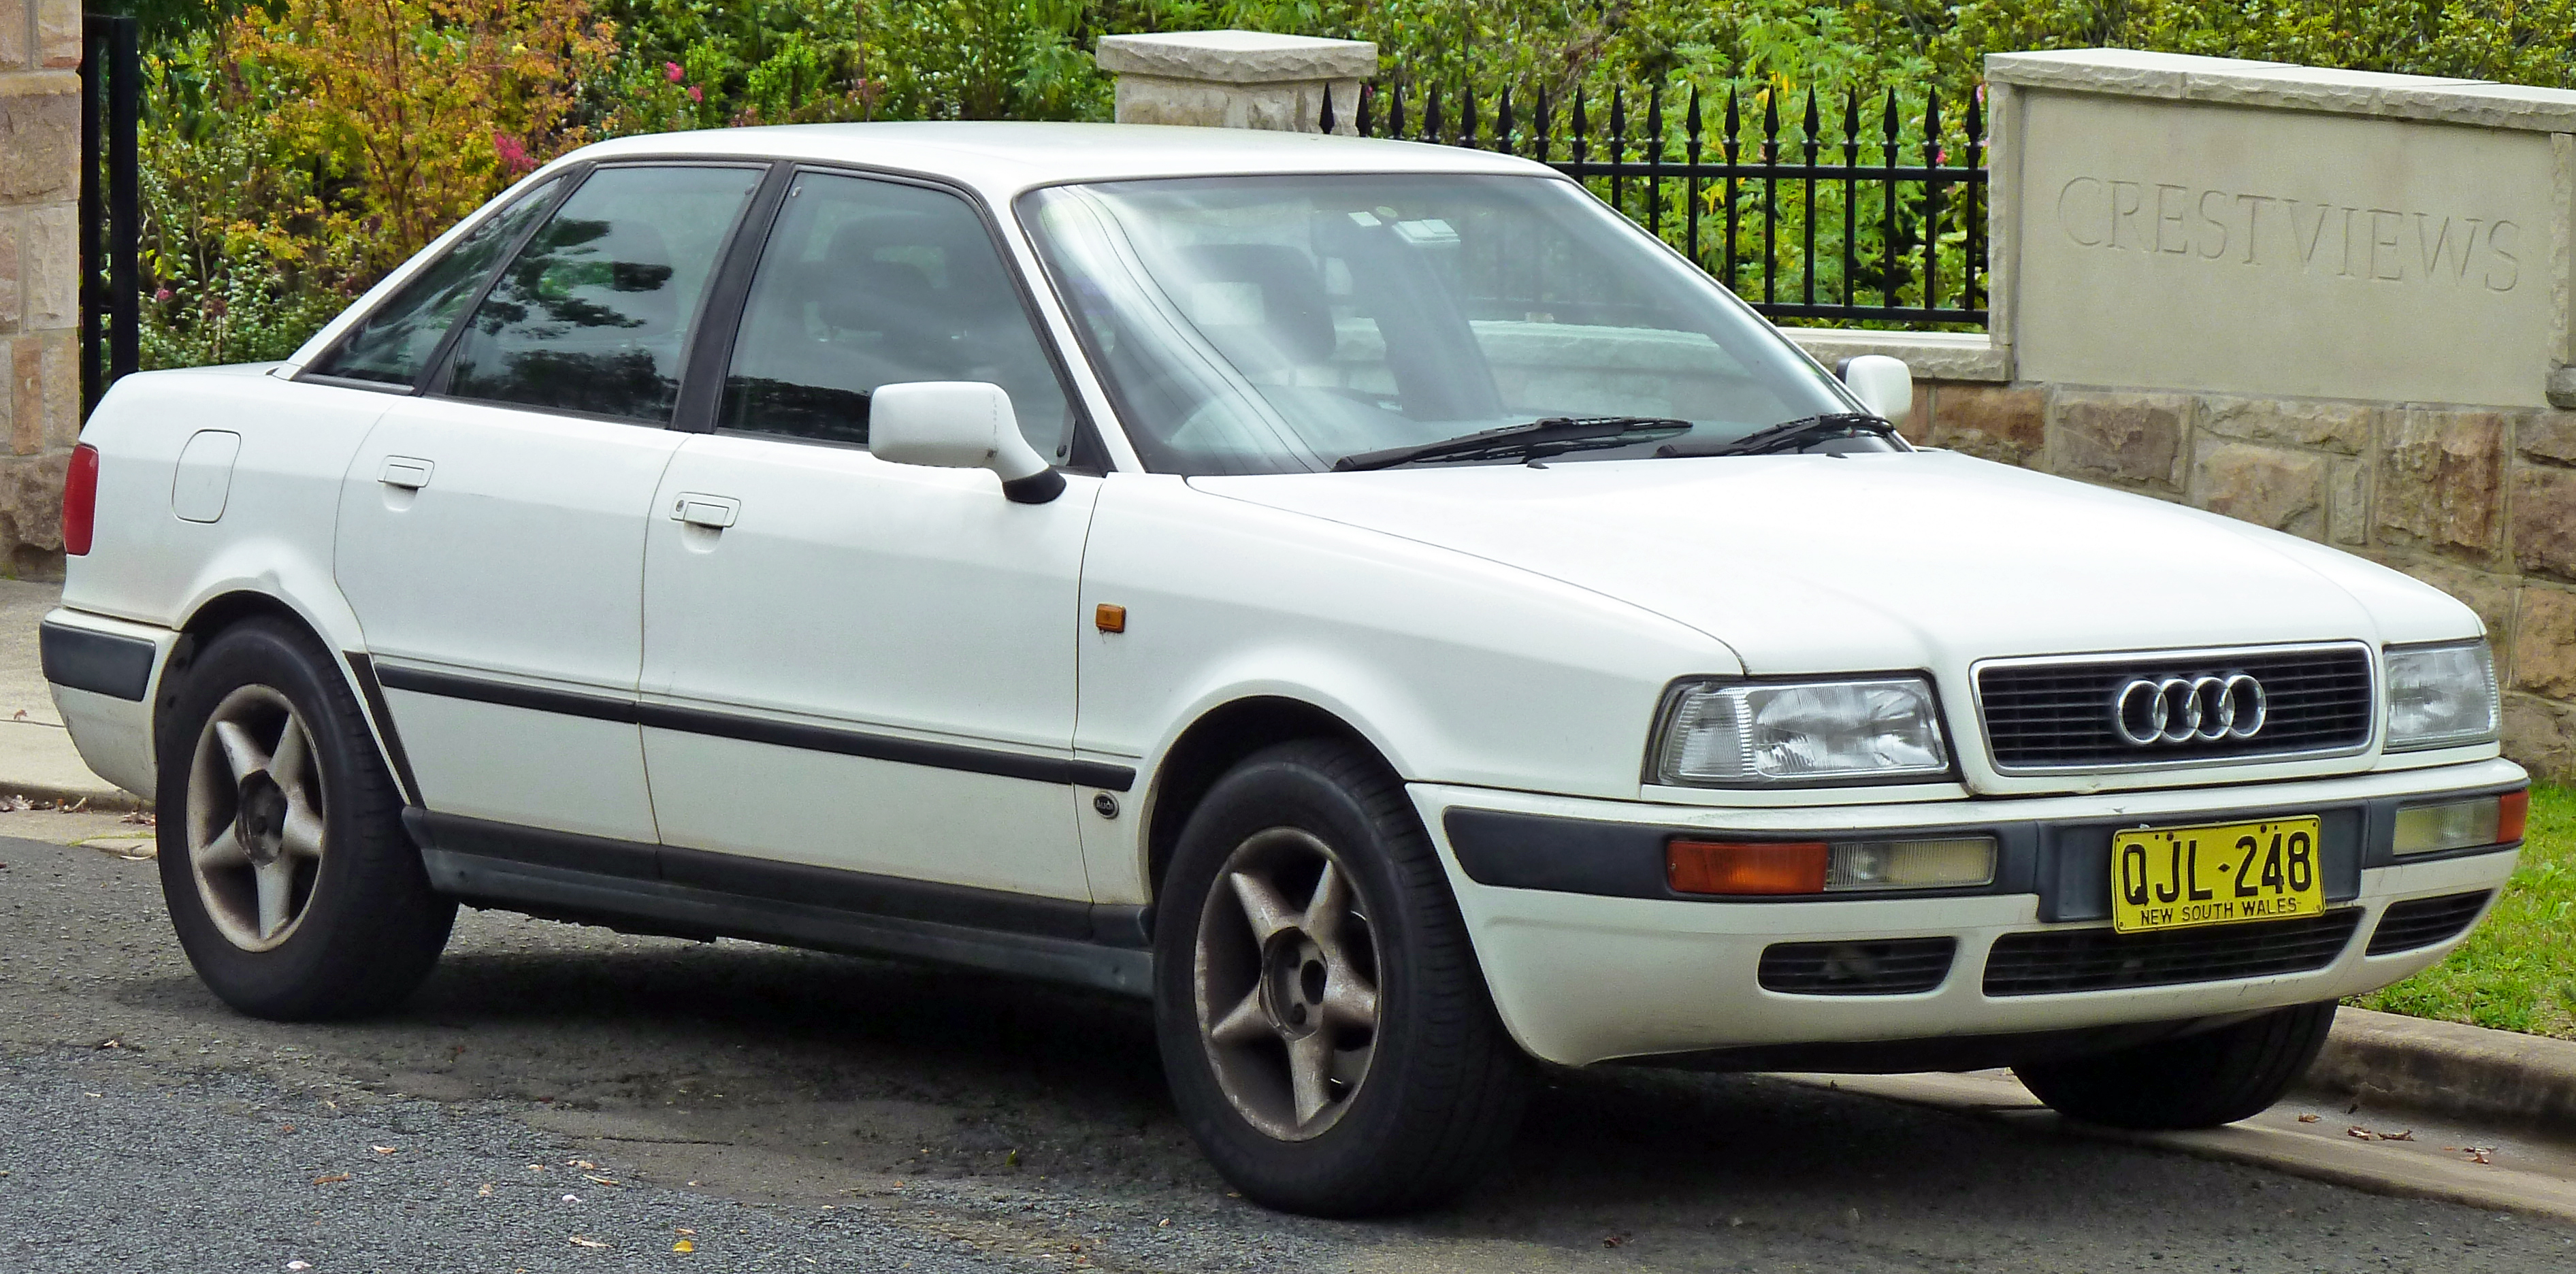 1991 Audi 80 - Information and photos - ZombieDrive